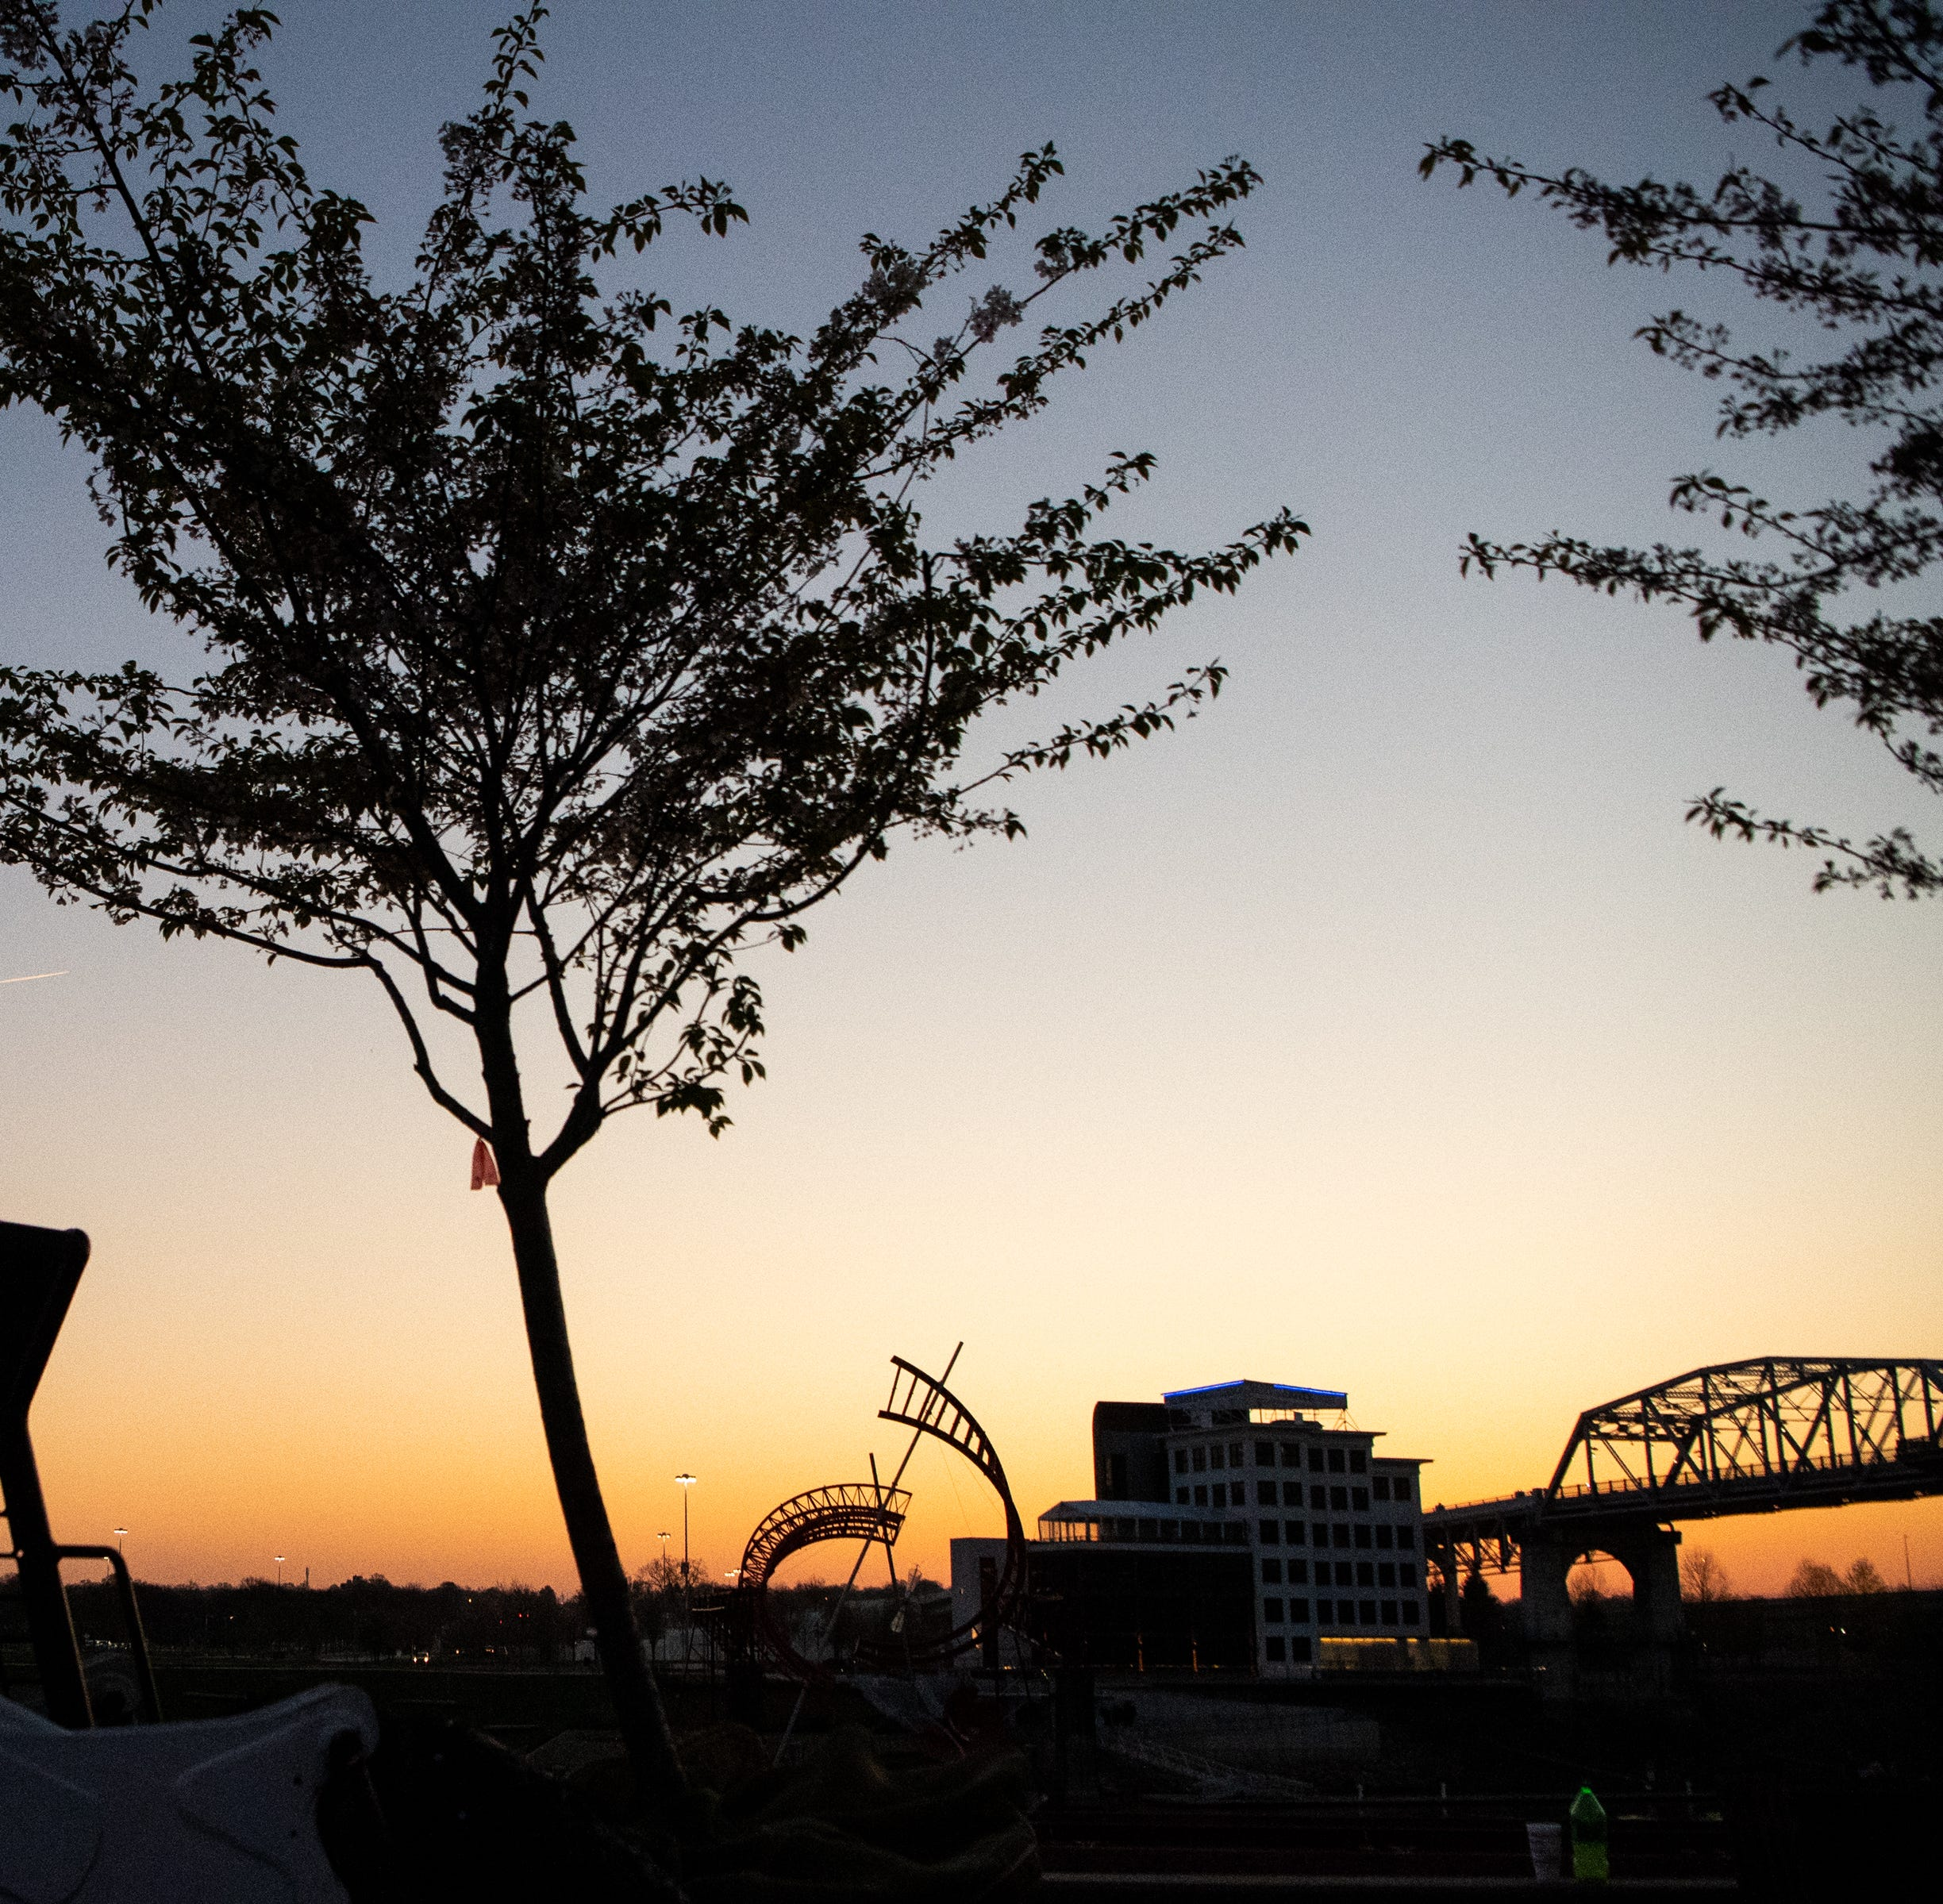 Decisions on Nashville cherry trees were naive, disconnected | Opinion